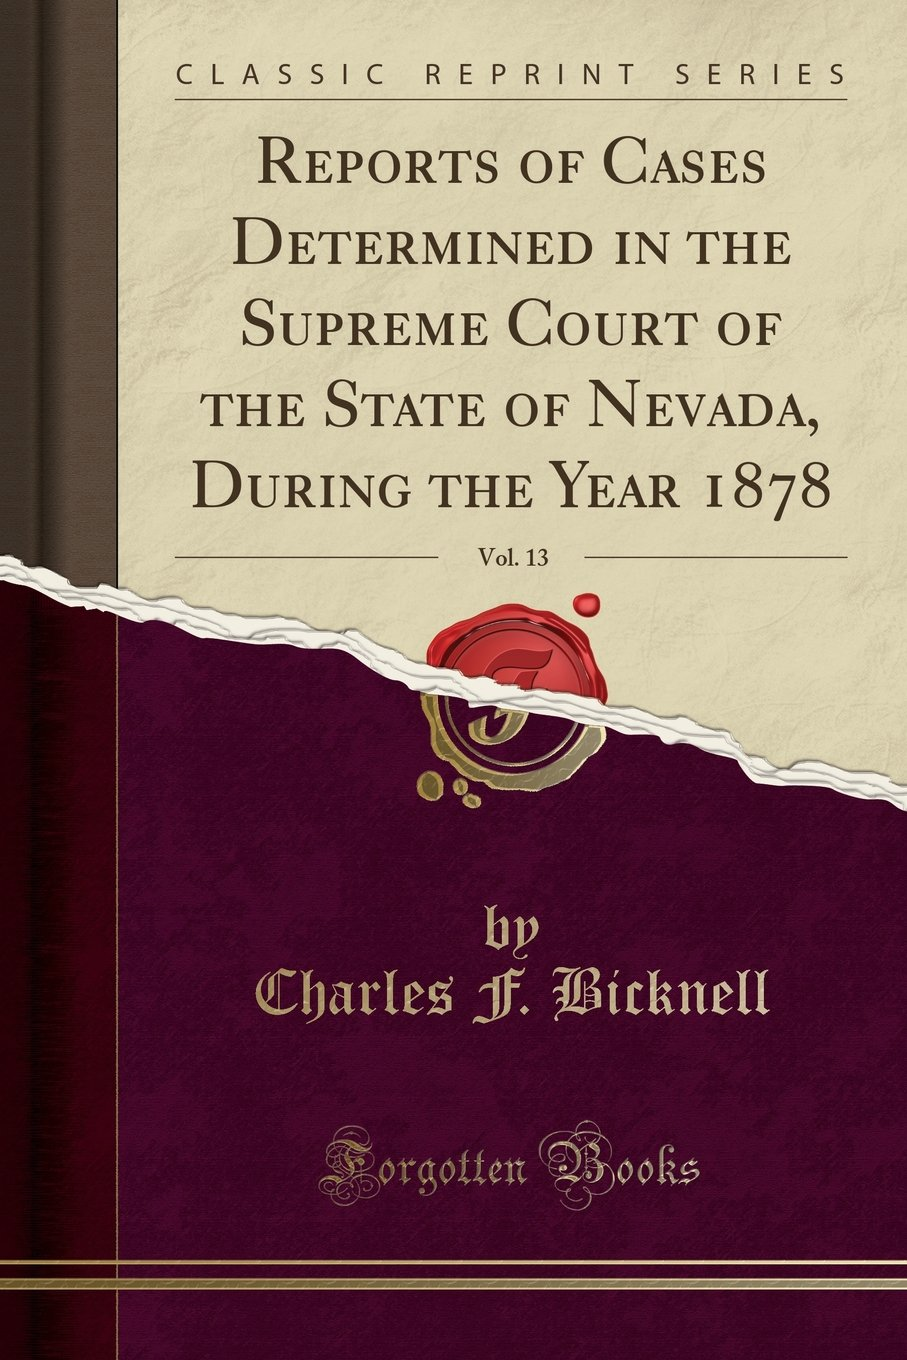 Reports of Cases Determined in the Supreme Court of the State of Nevada, During the Year 1878, Vol. 13 (Classic Reprint) PDF